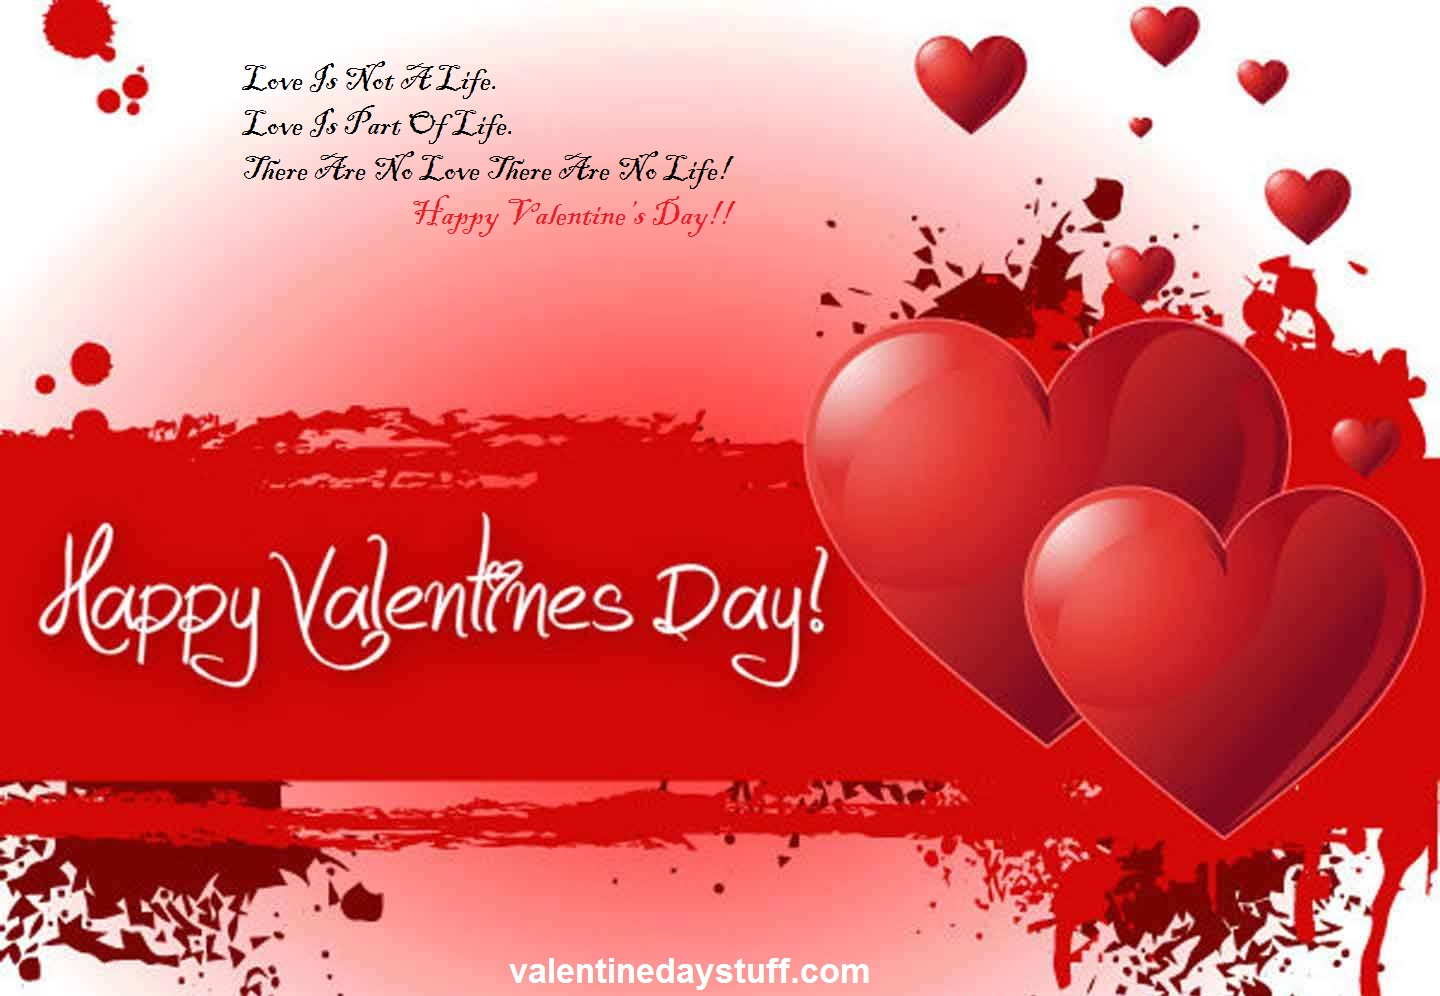 Happy Valentines Day Greeting Cards 2017 Free Download Techicy – Pictures of Valentine Day Cards